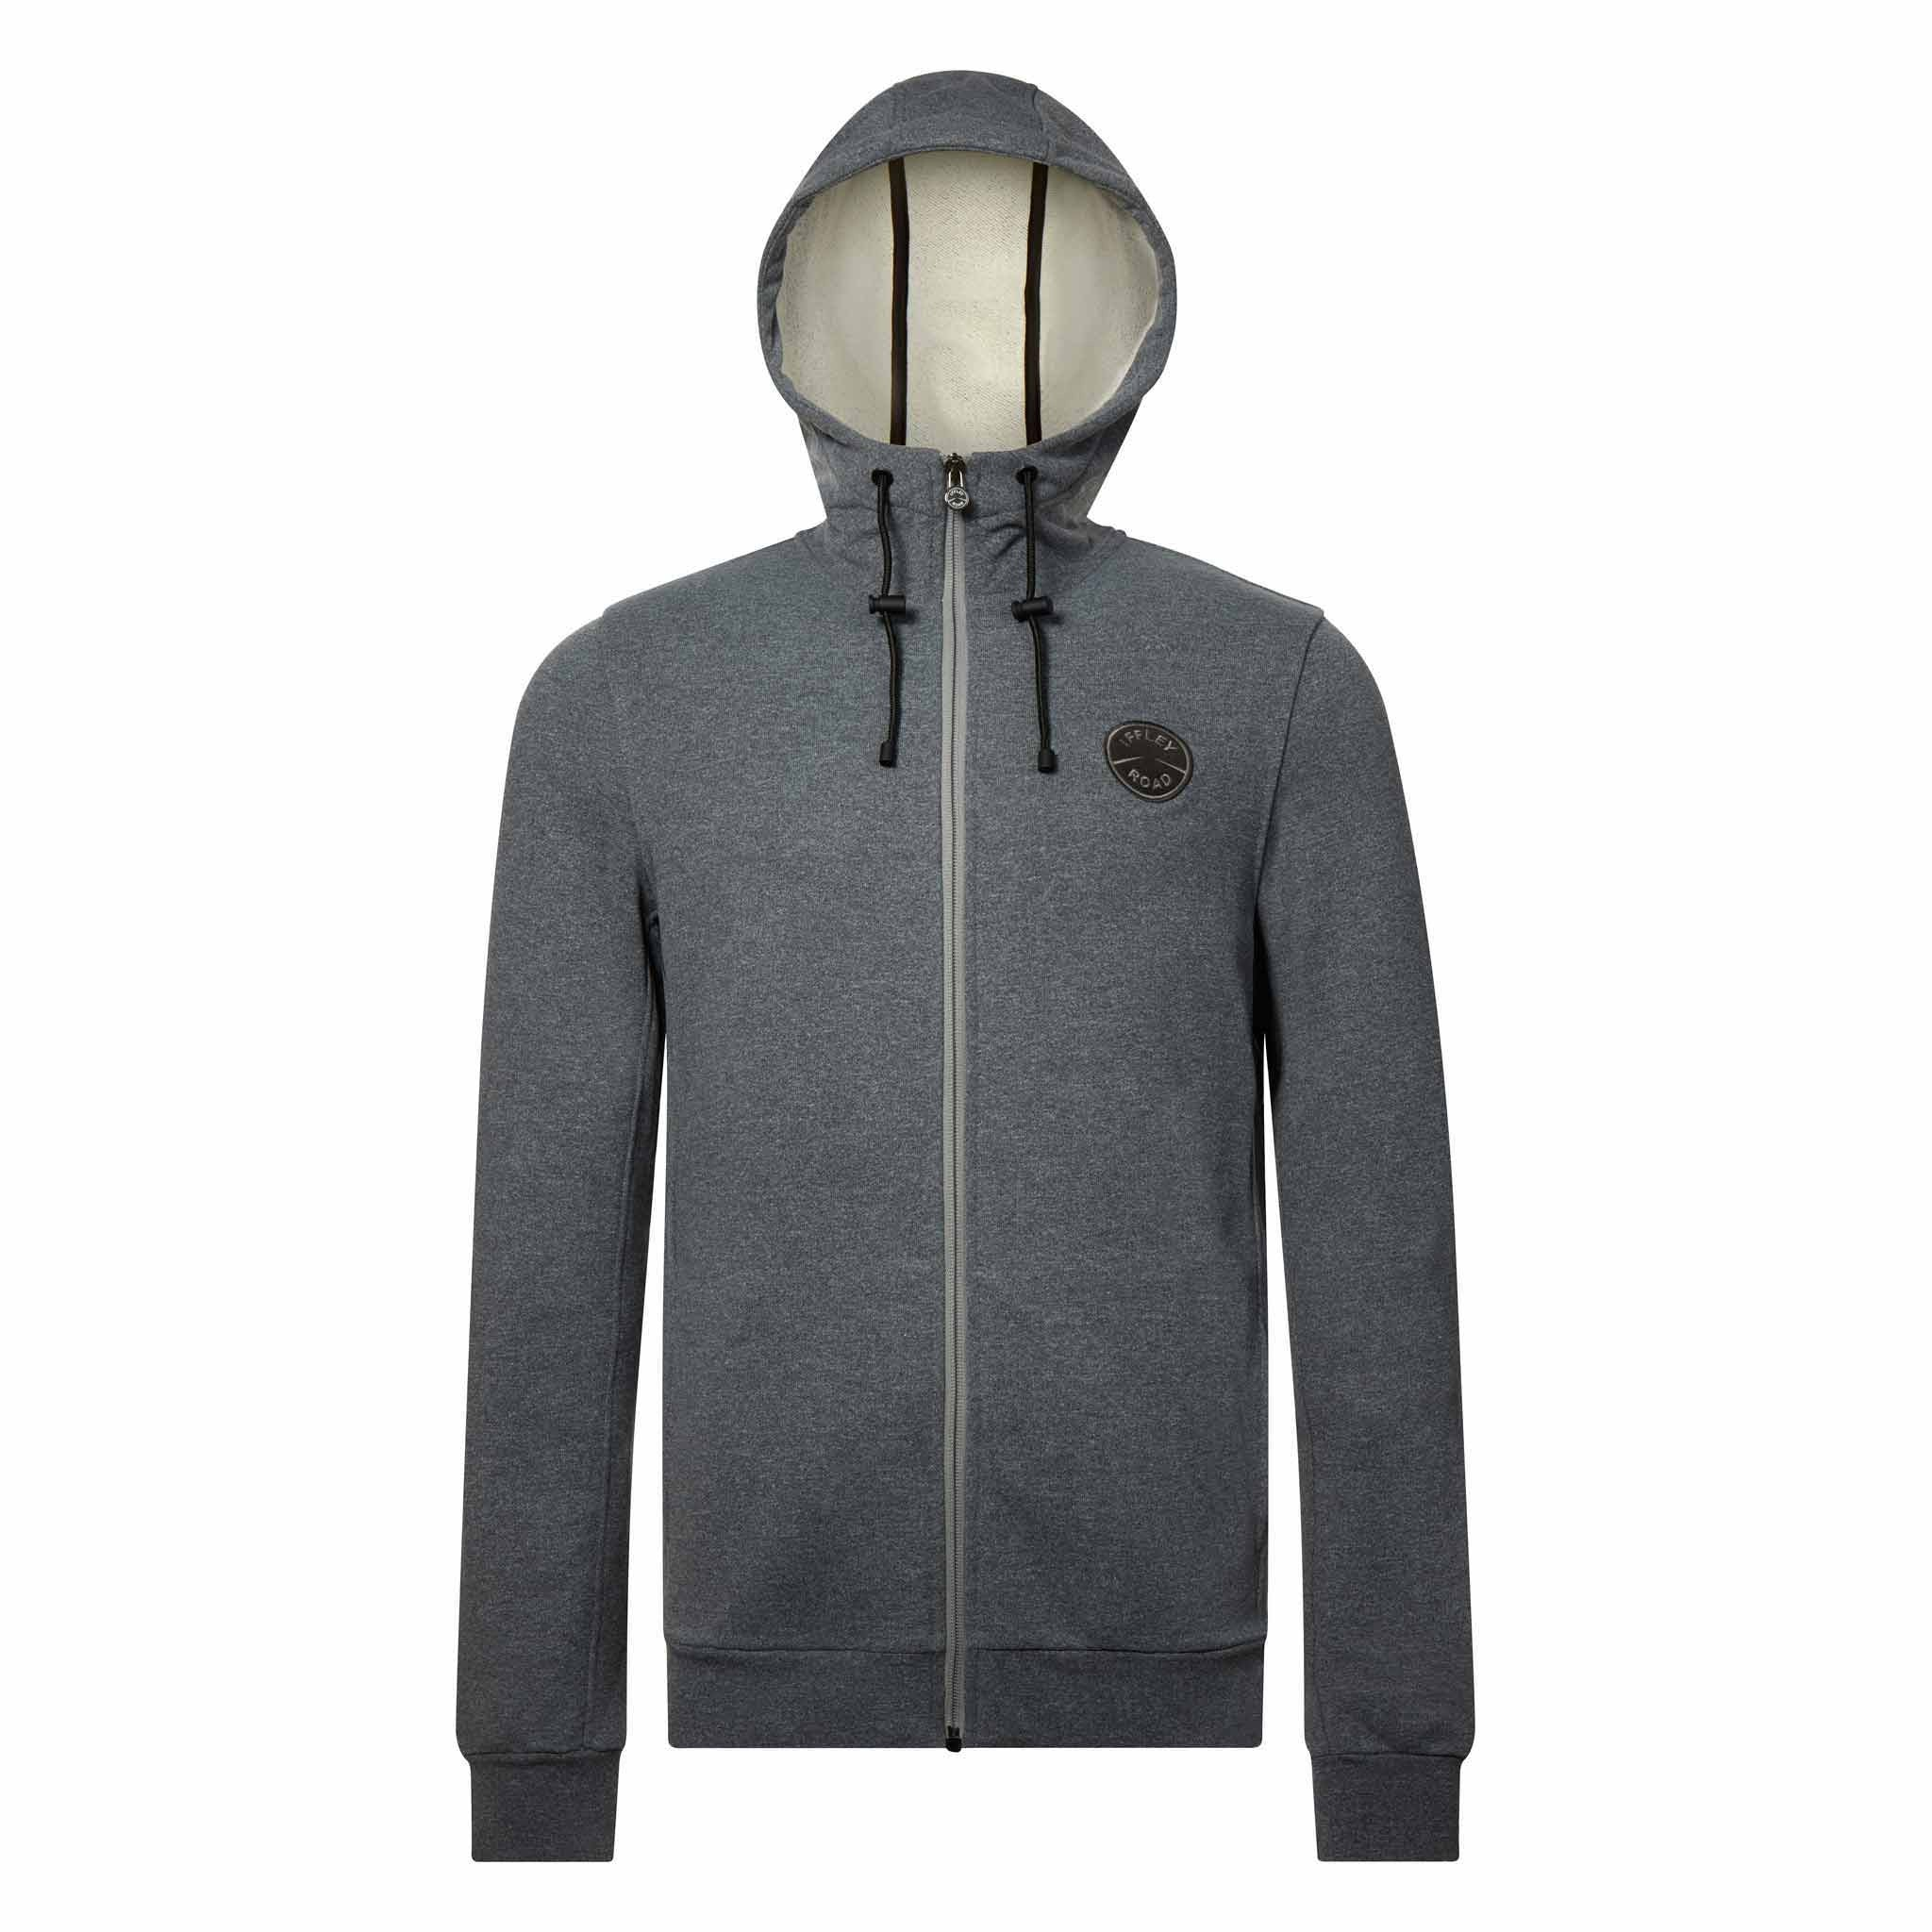 Fife pebble grey hooded, post-run sweatshirt